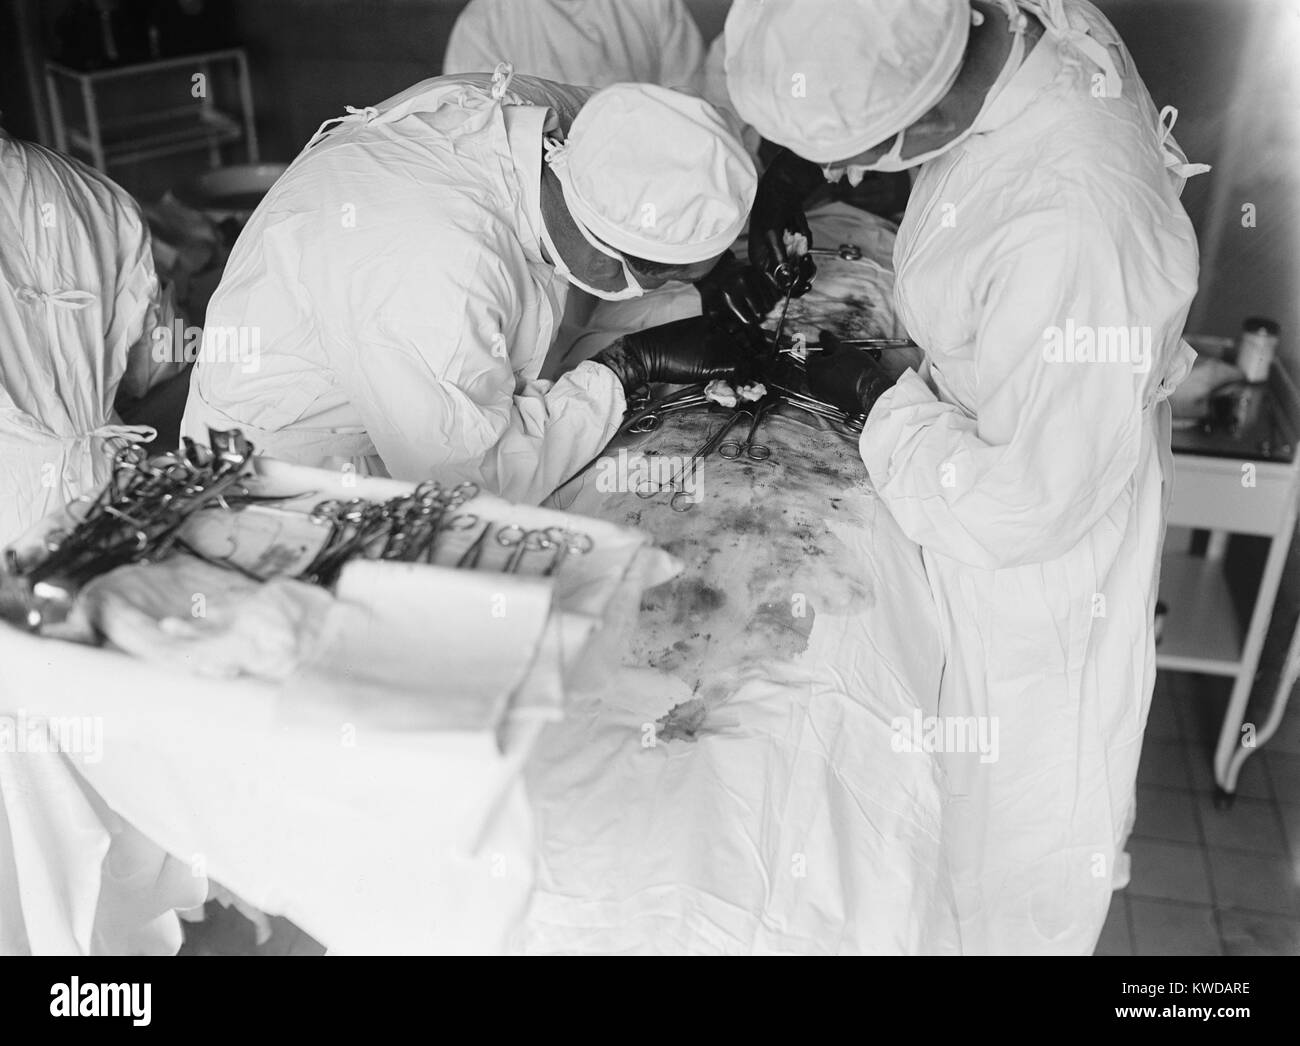 Attending surgeon leans over to work closely over a patient's abdomen. The surgical field is stained with blood. Stock Photo